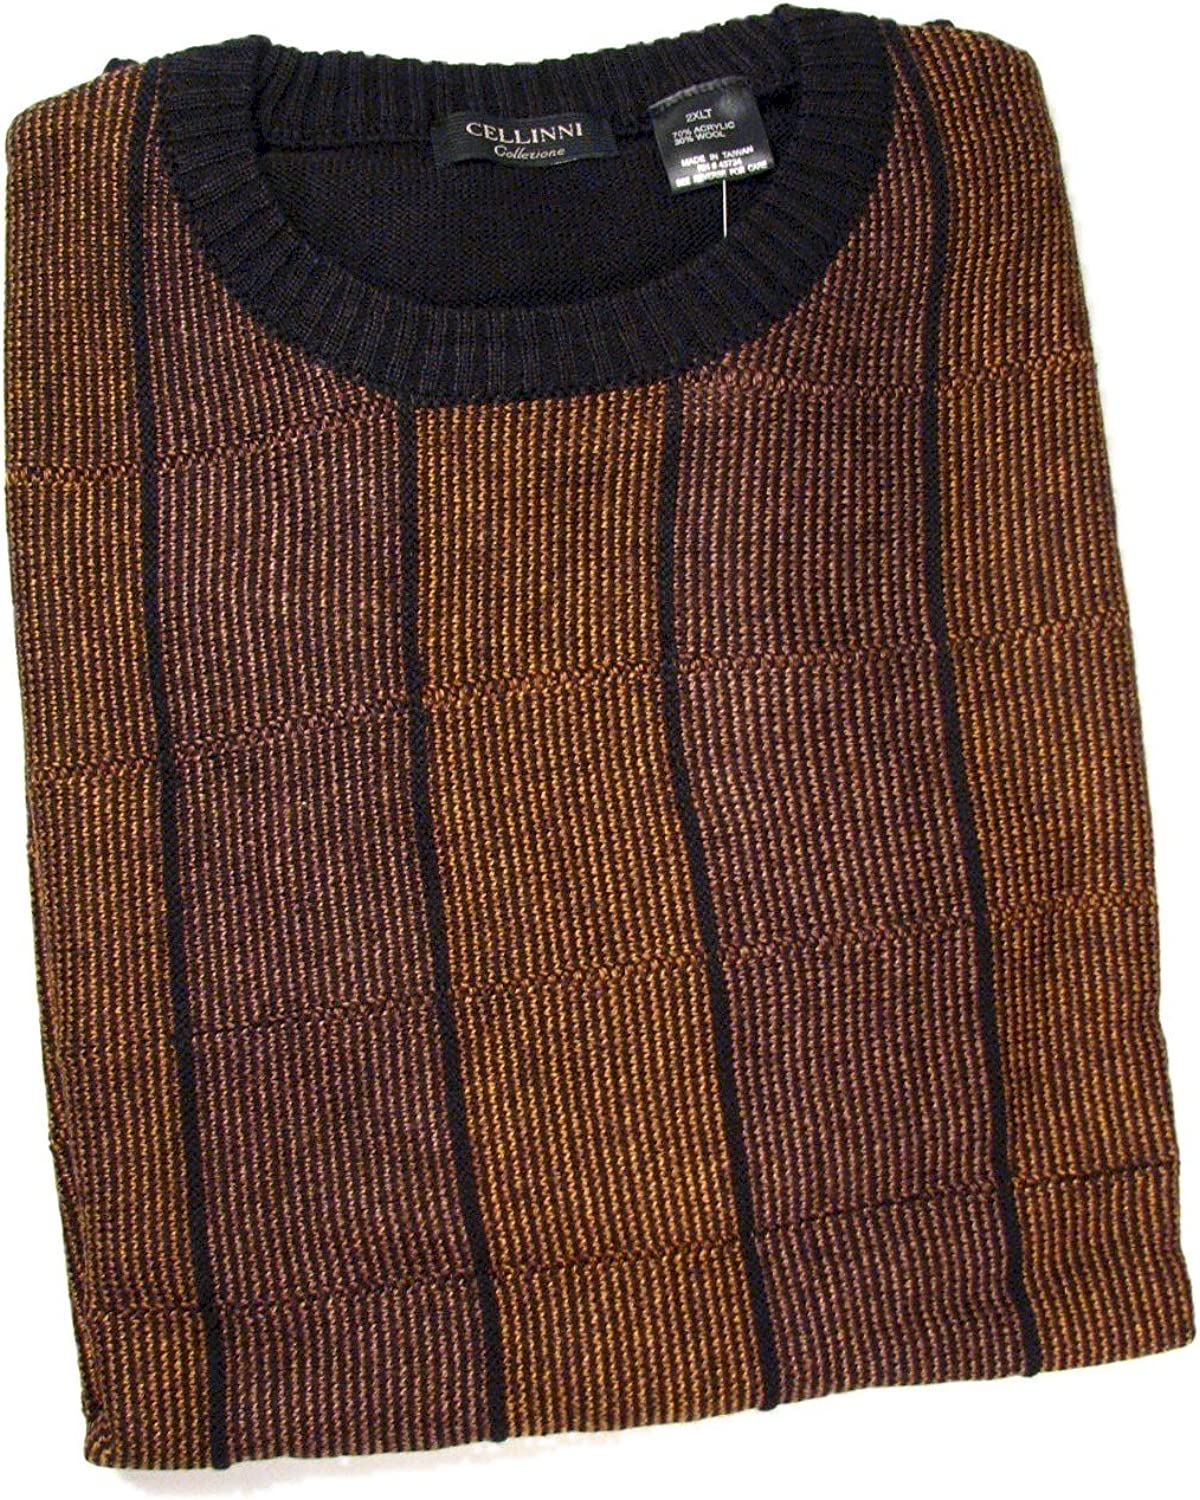 Cellini Big and Tall 5800-805 Crew Boxes Sweater Bronze